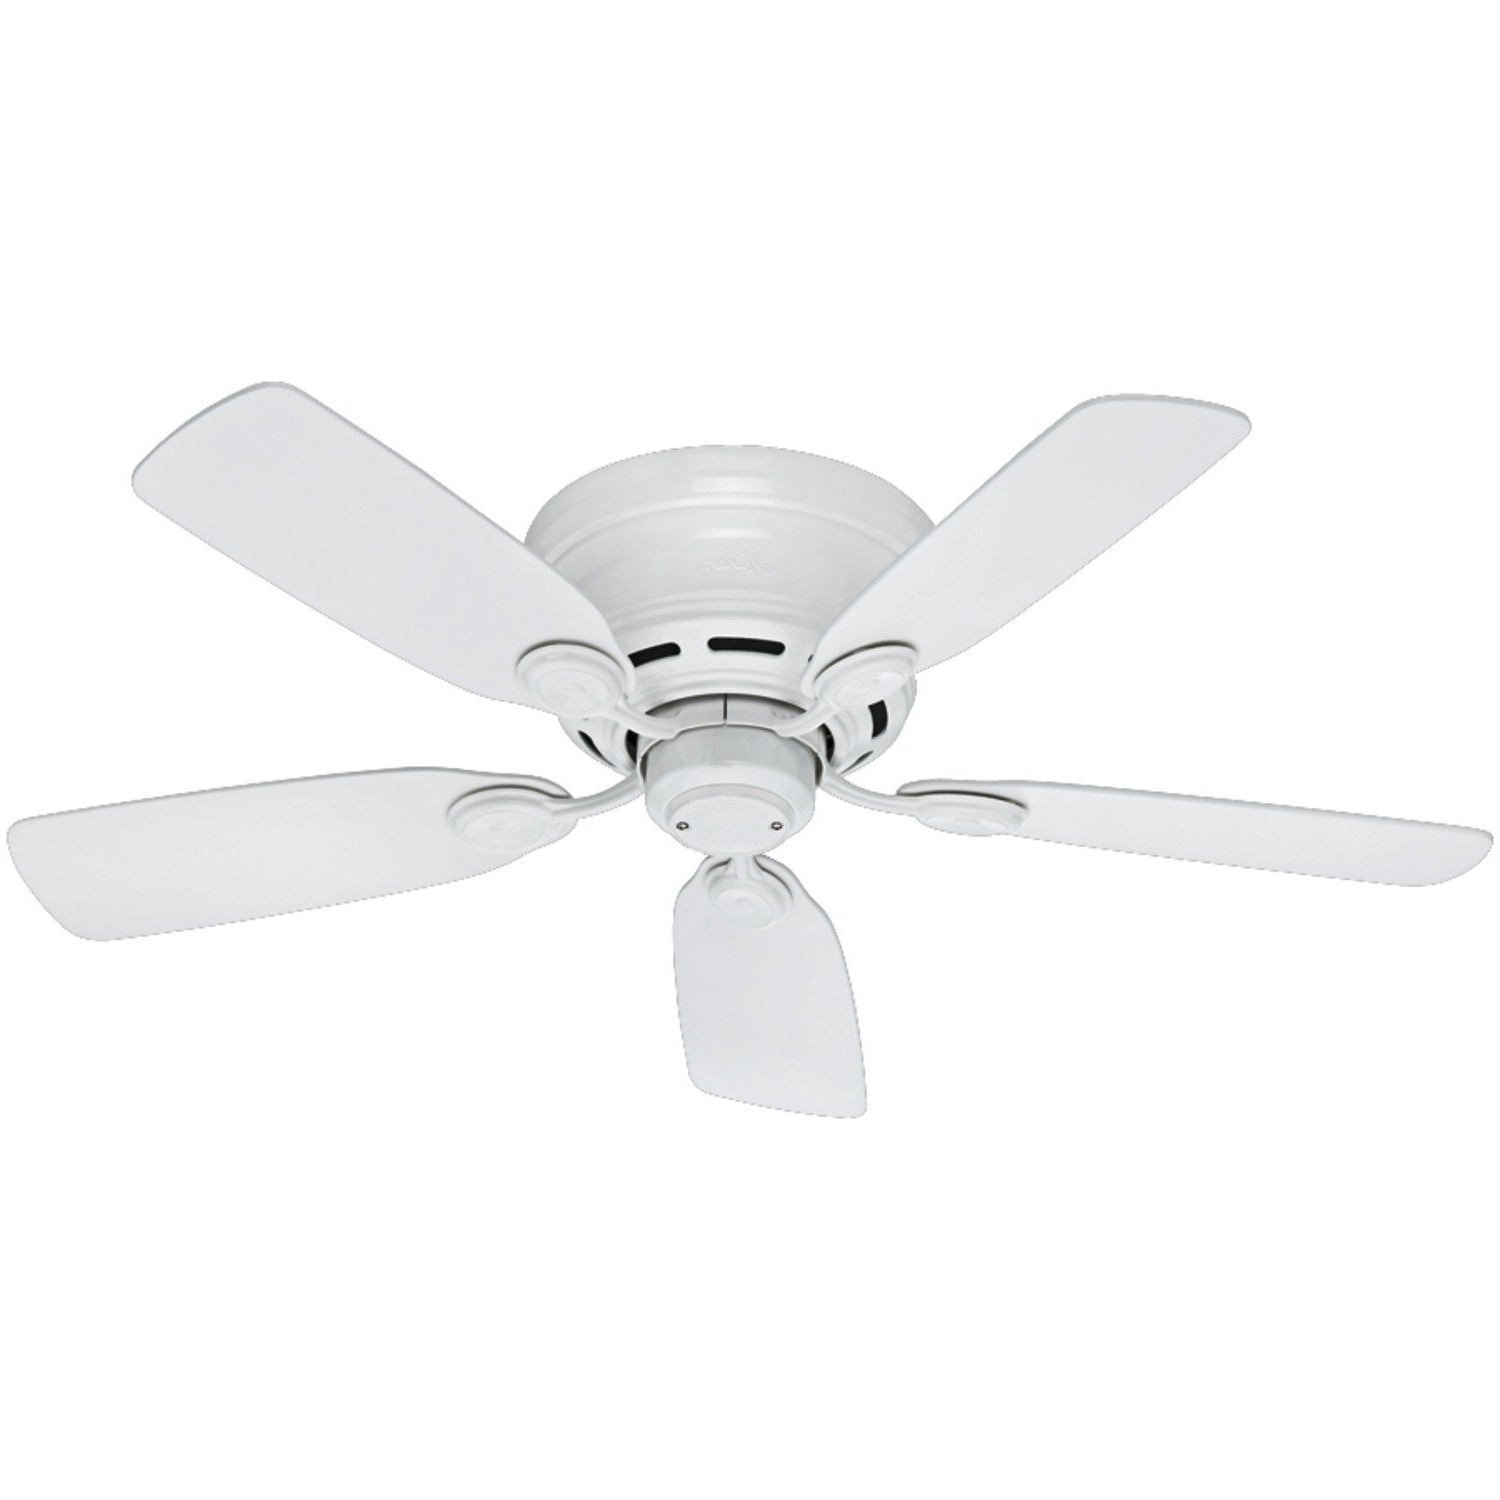 2019 Outdoor Ceiling Fans With Long Downrod Intended For Flush Mount Ceiling Fans Review – Choose The Best (View 3 of 20)